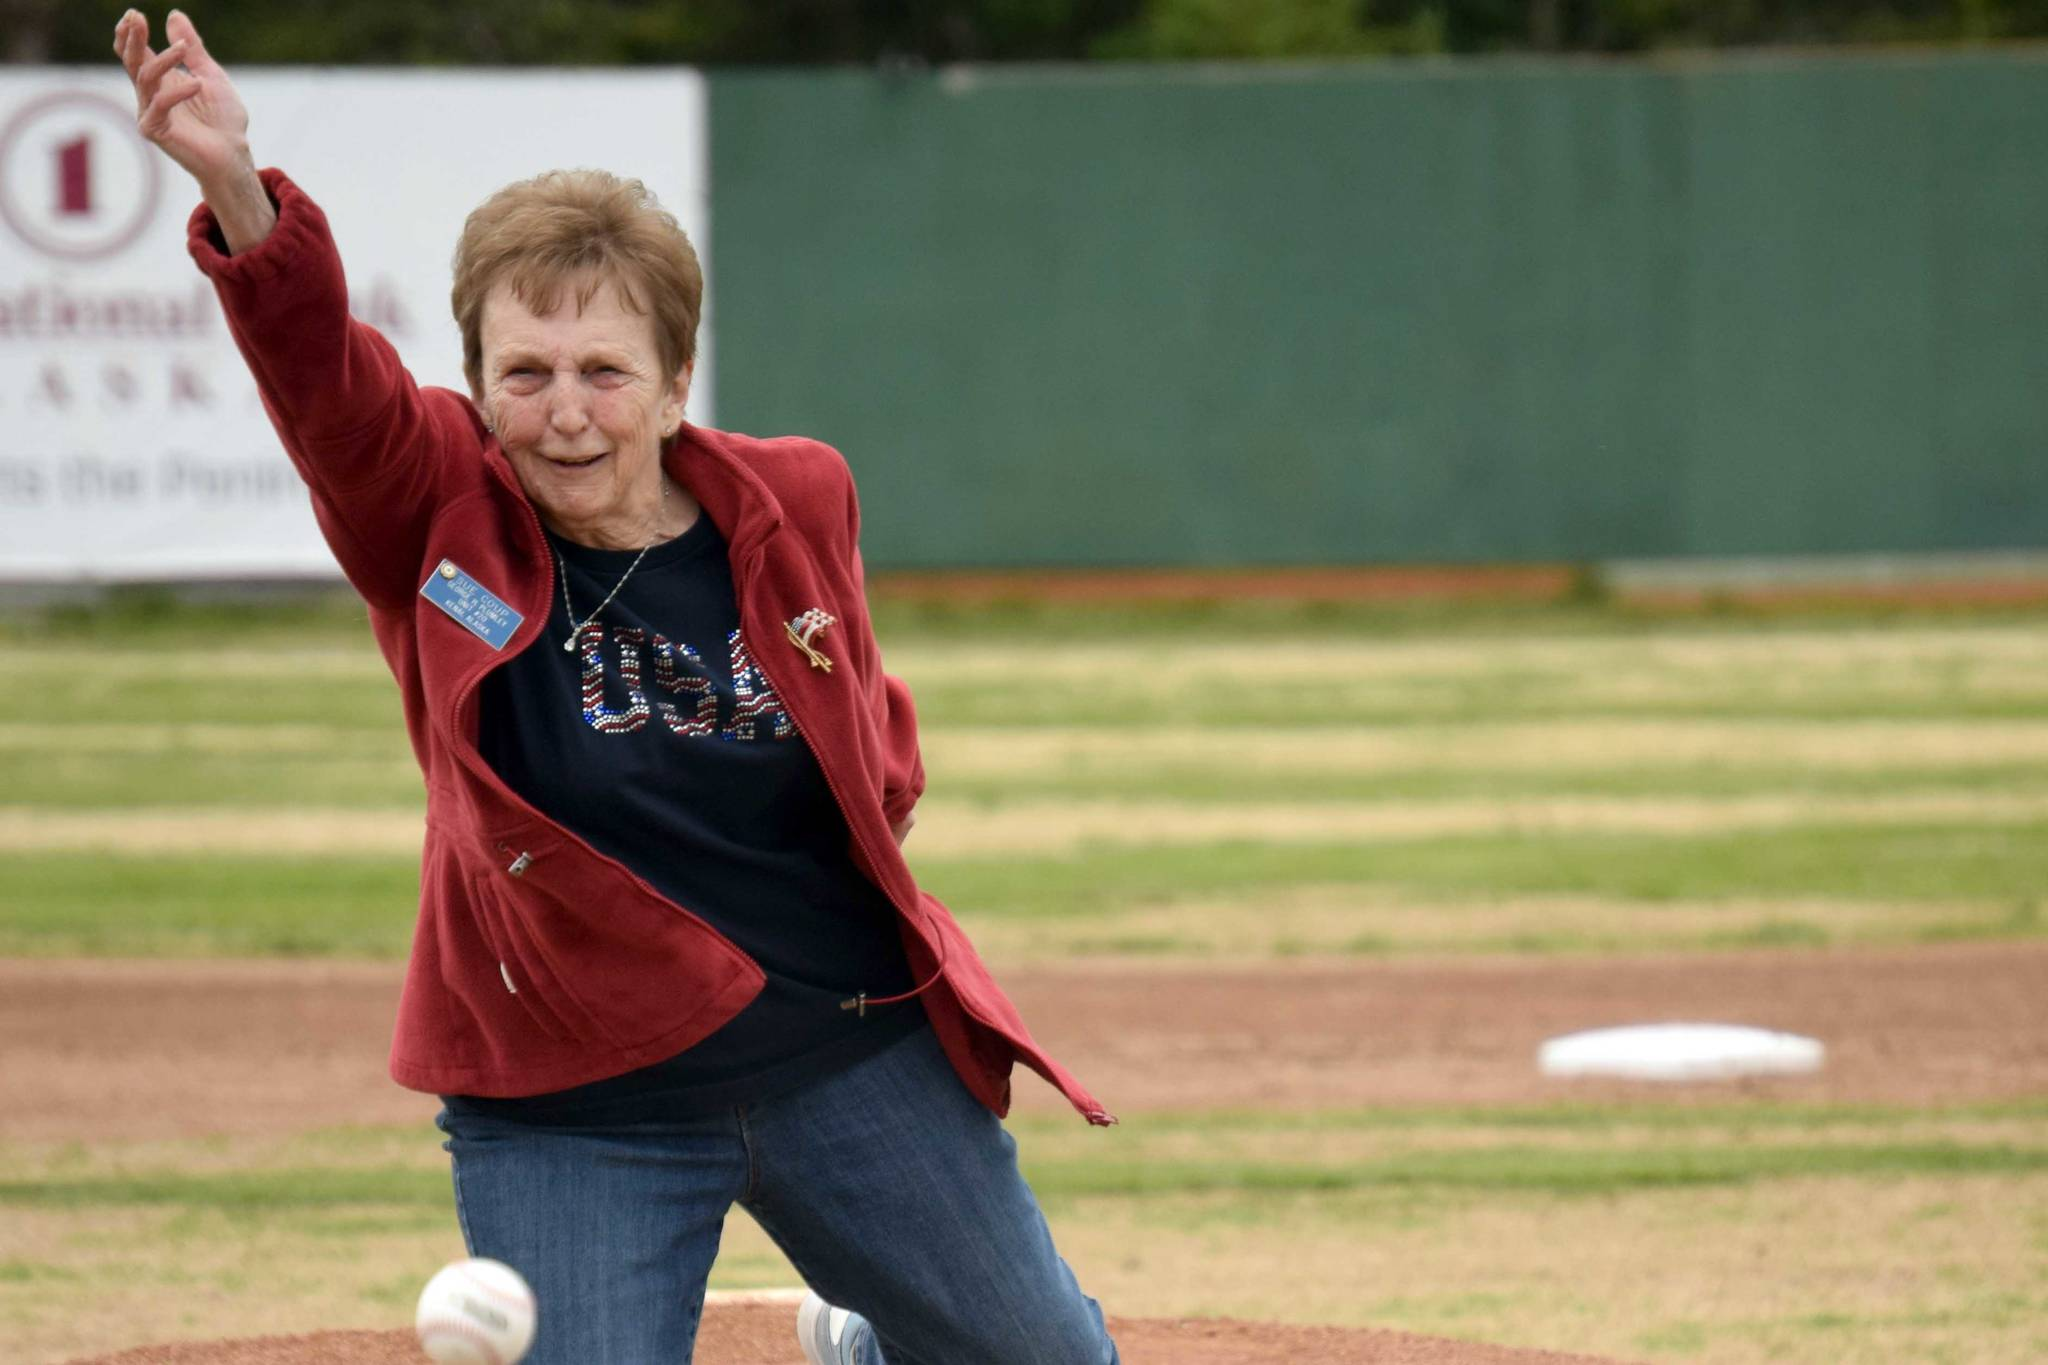 Nikiski's Sue Coup throws out the first pitch at a ceremony honoring former Twins head coach and general manager Lance Coz on Saturday, July 3, 2021, at Coral Seymour Memorial Park in Kenai, Alaska. (Photo by Jeff Helminiak/Peninsula Clarion)